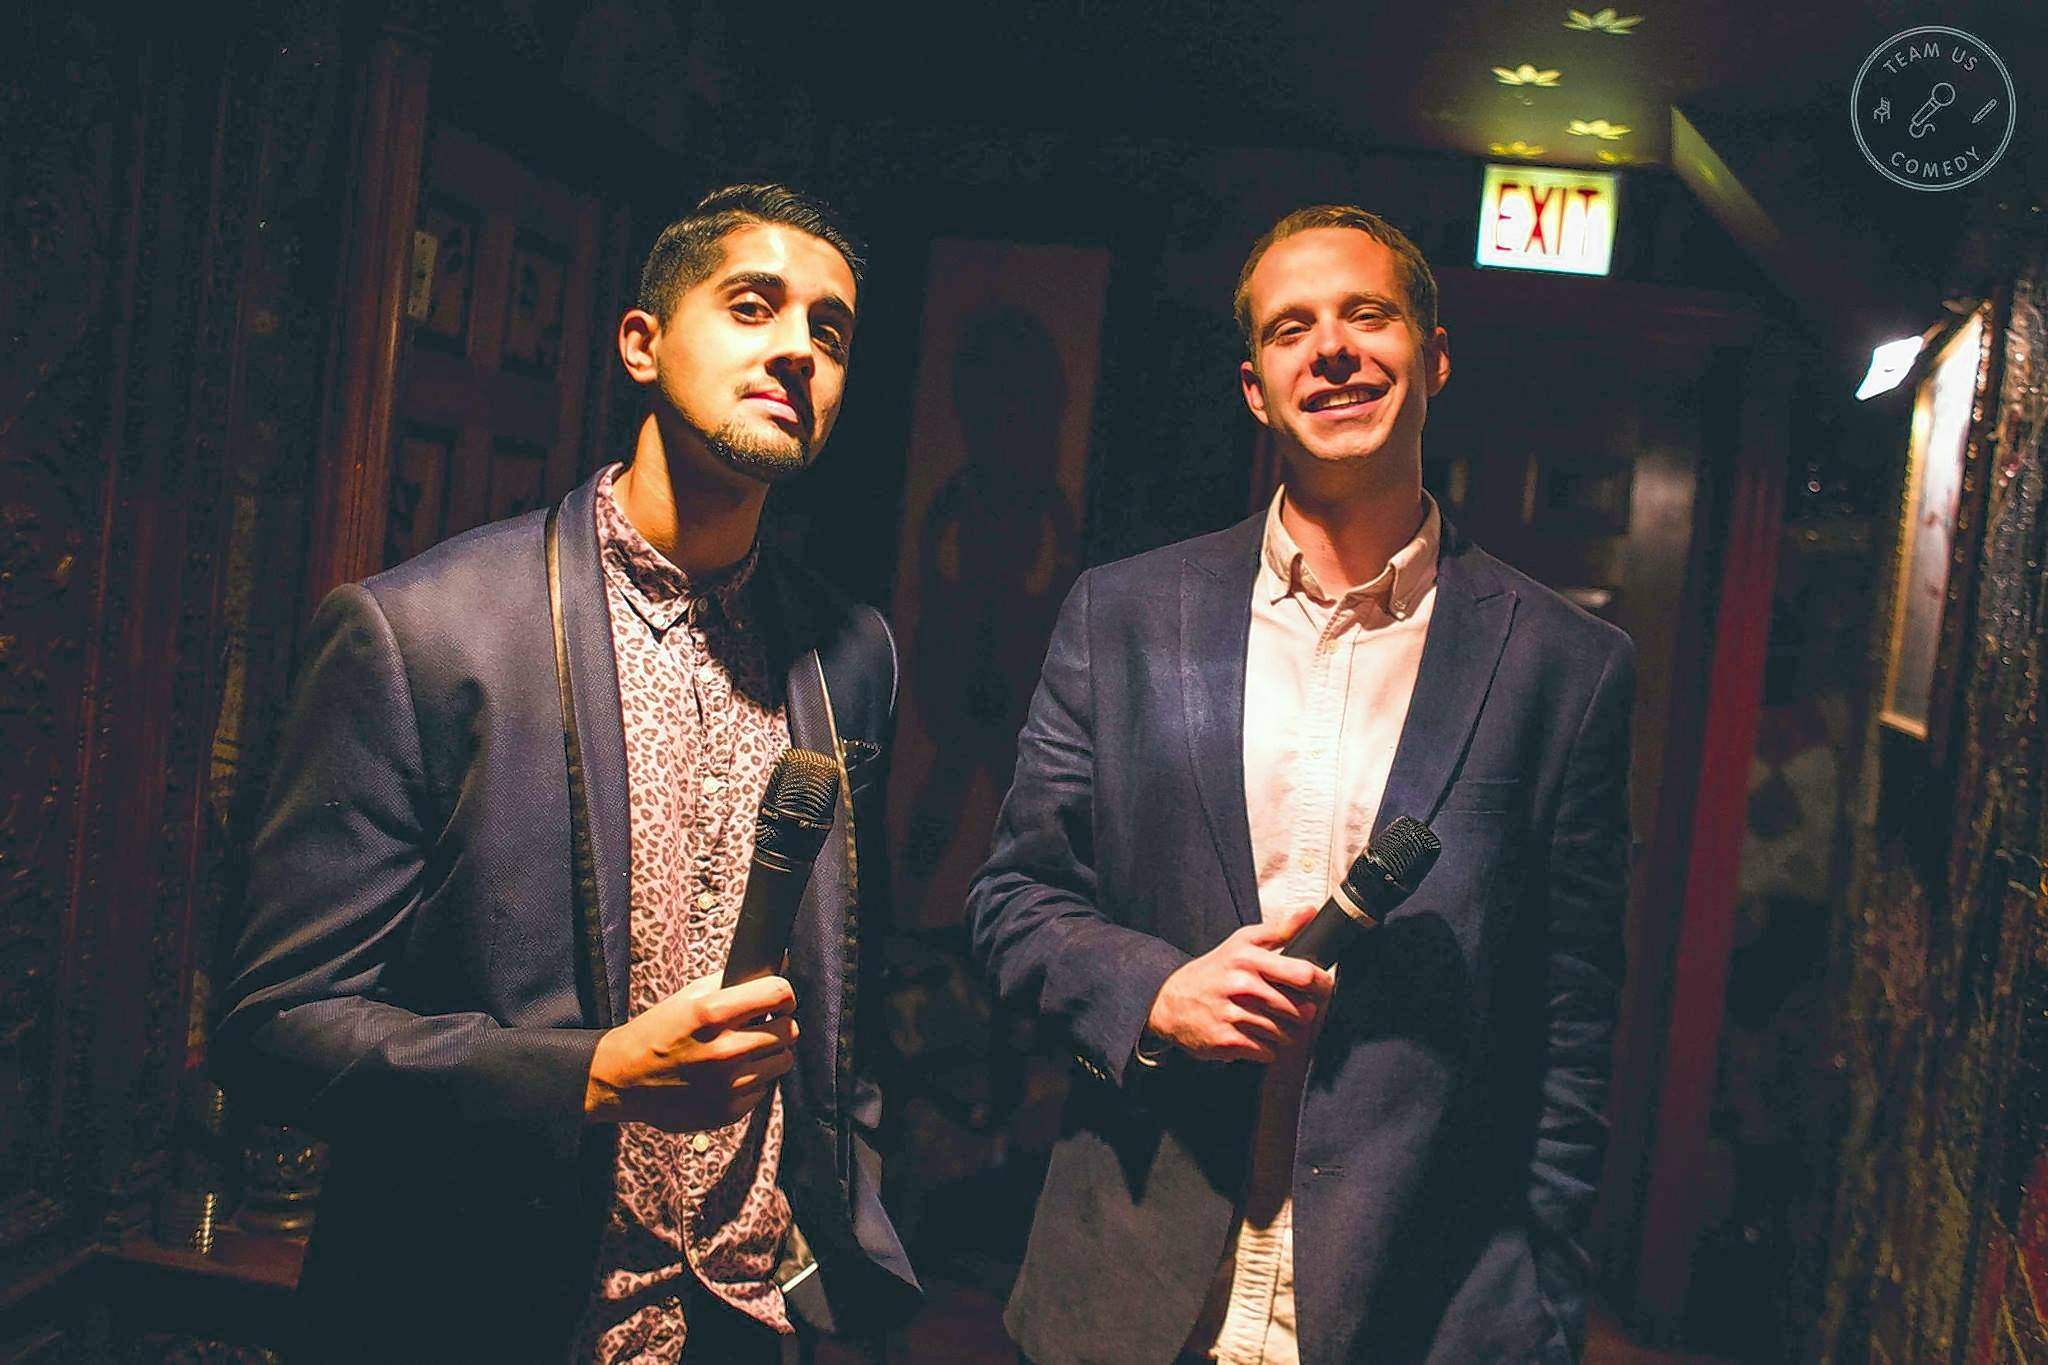 Vik Pandya, left, grew up in Naperville, while Tyler Fowler hails from Lombard. The two joined with Meg Indurti to form the Chicago trio Team Us Comedy.